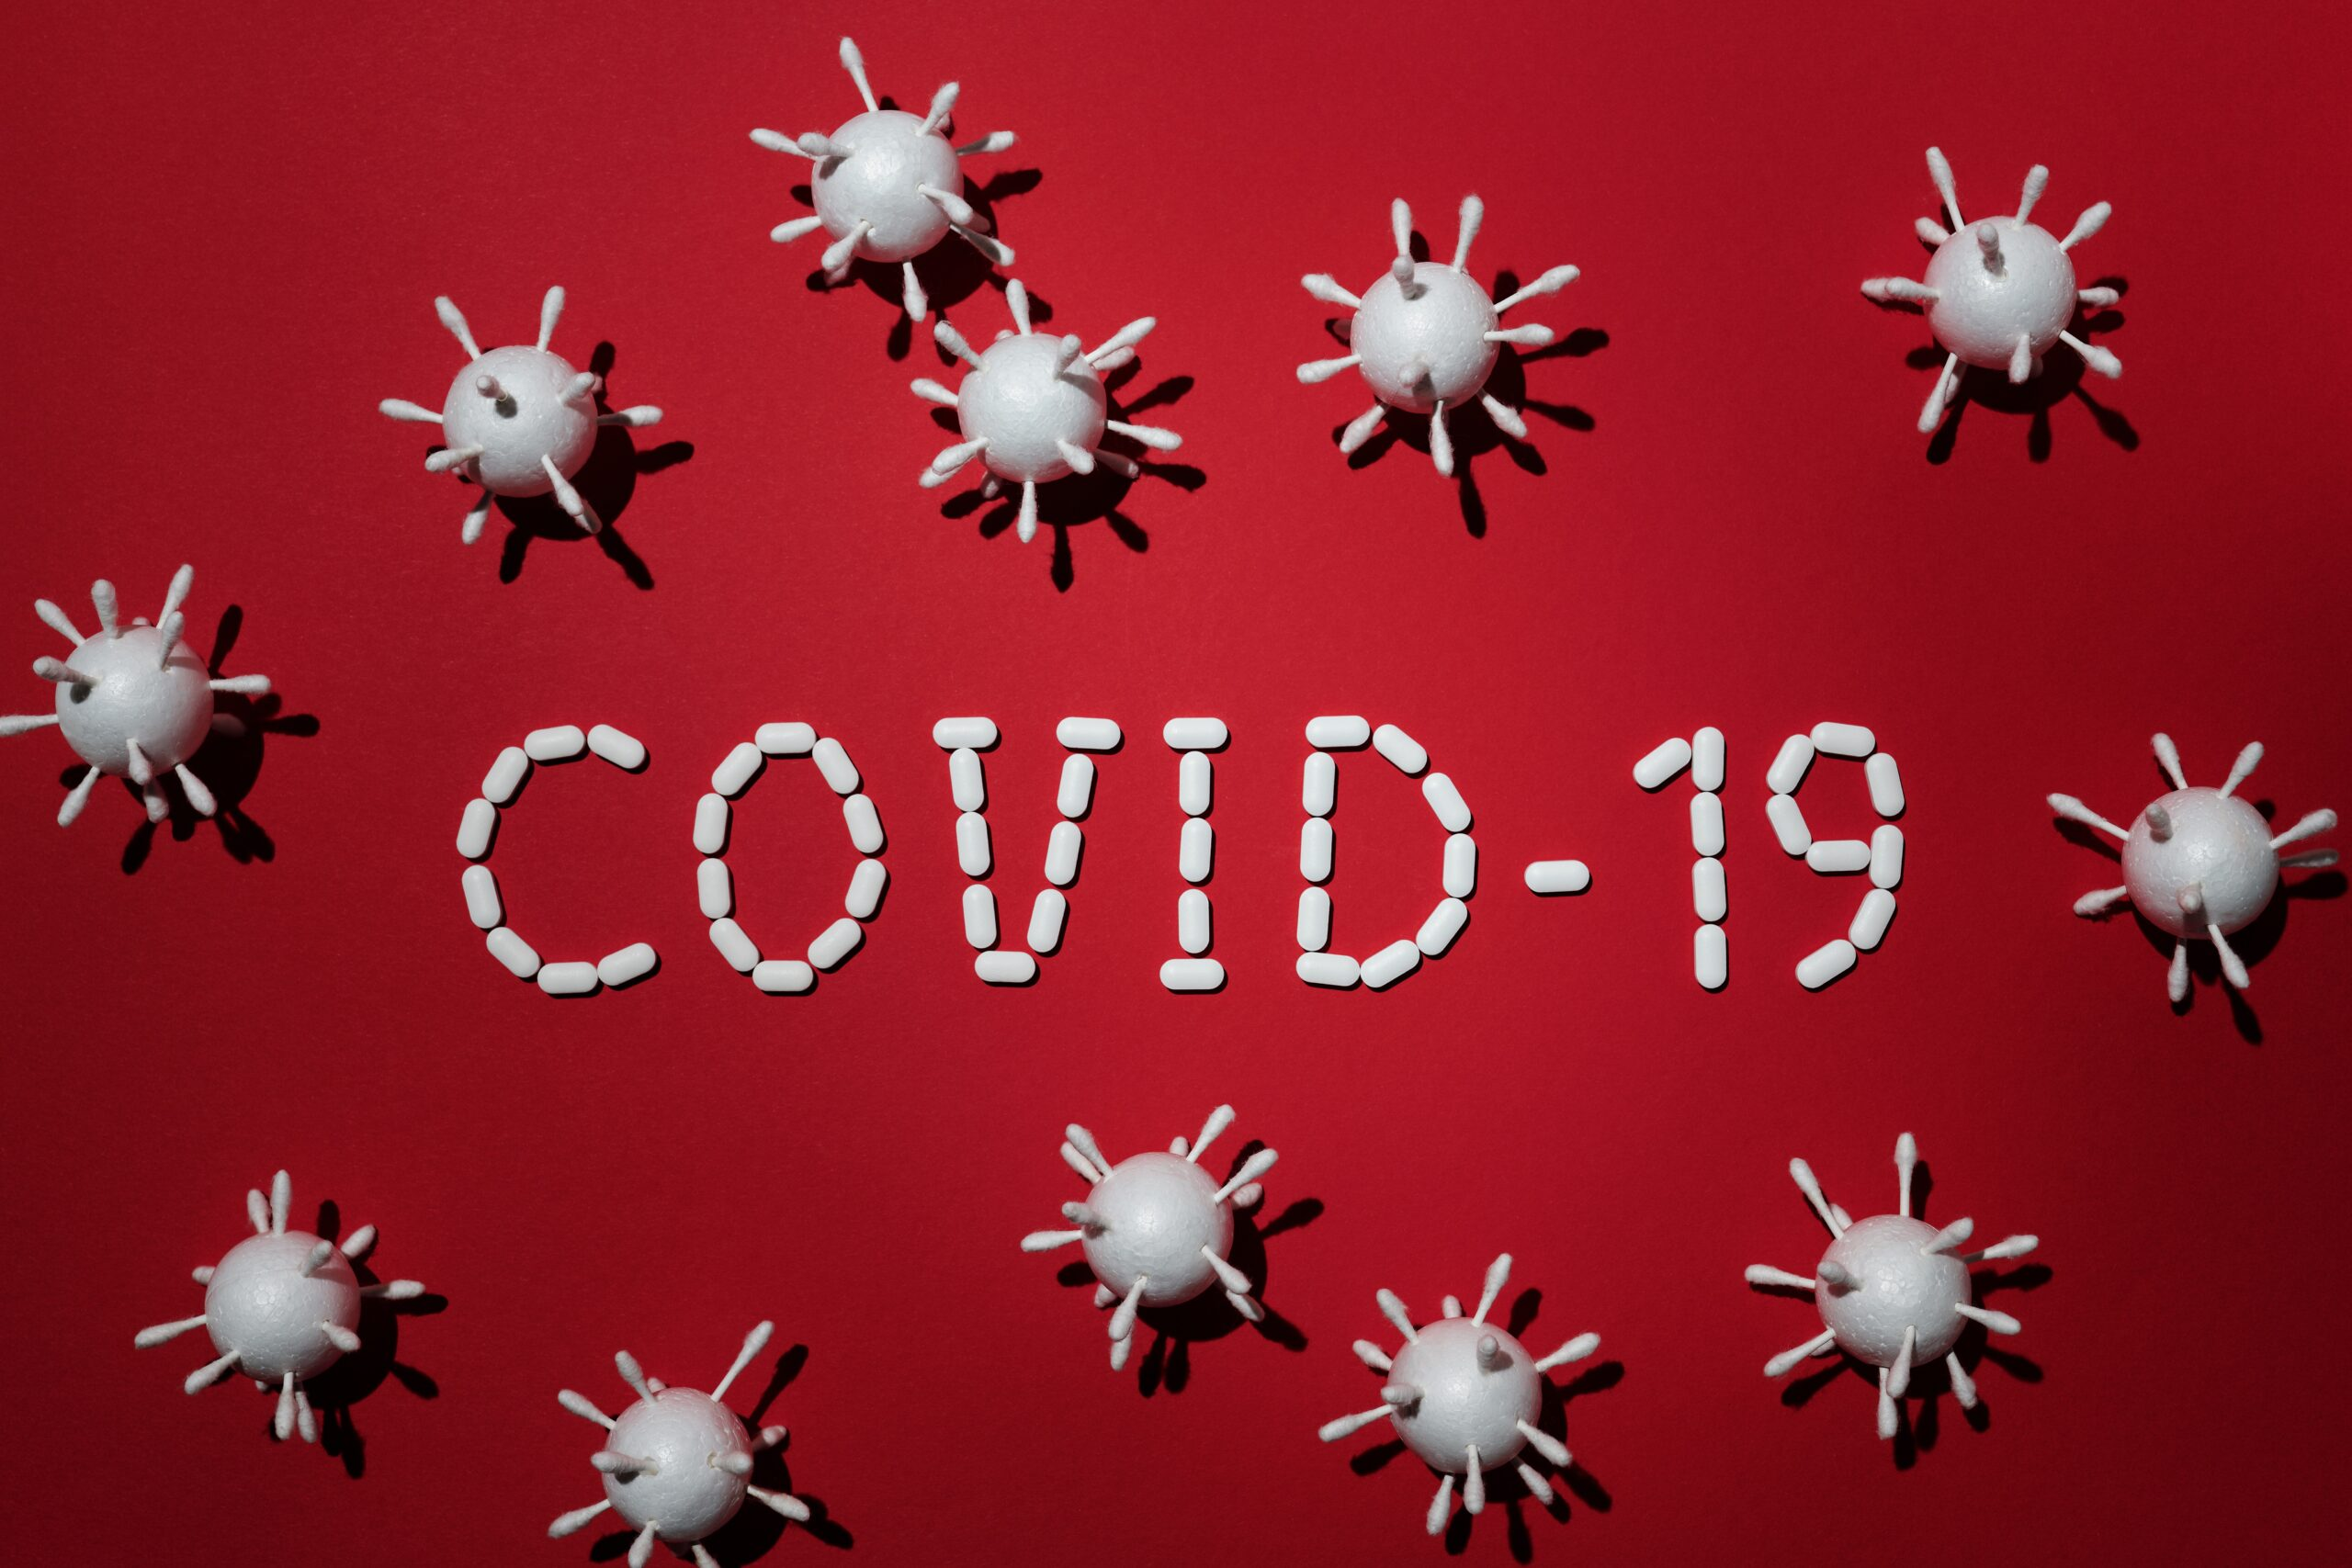 In the COVID-19 pandemic, a rally redoubles efforts to combat drug epidemic